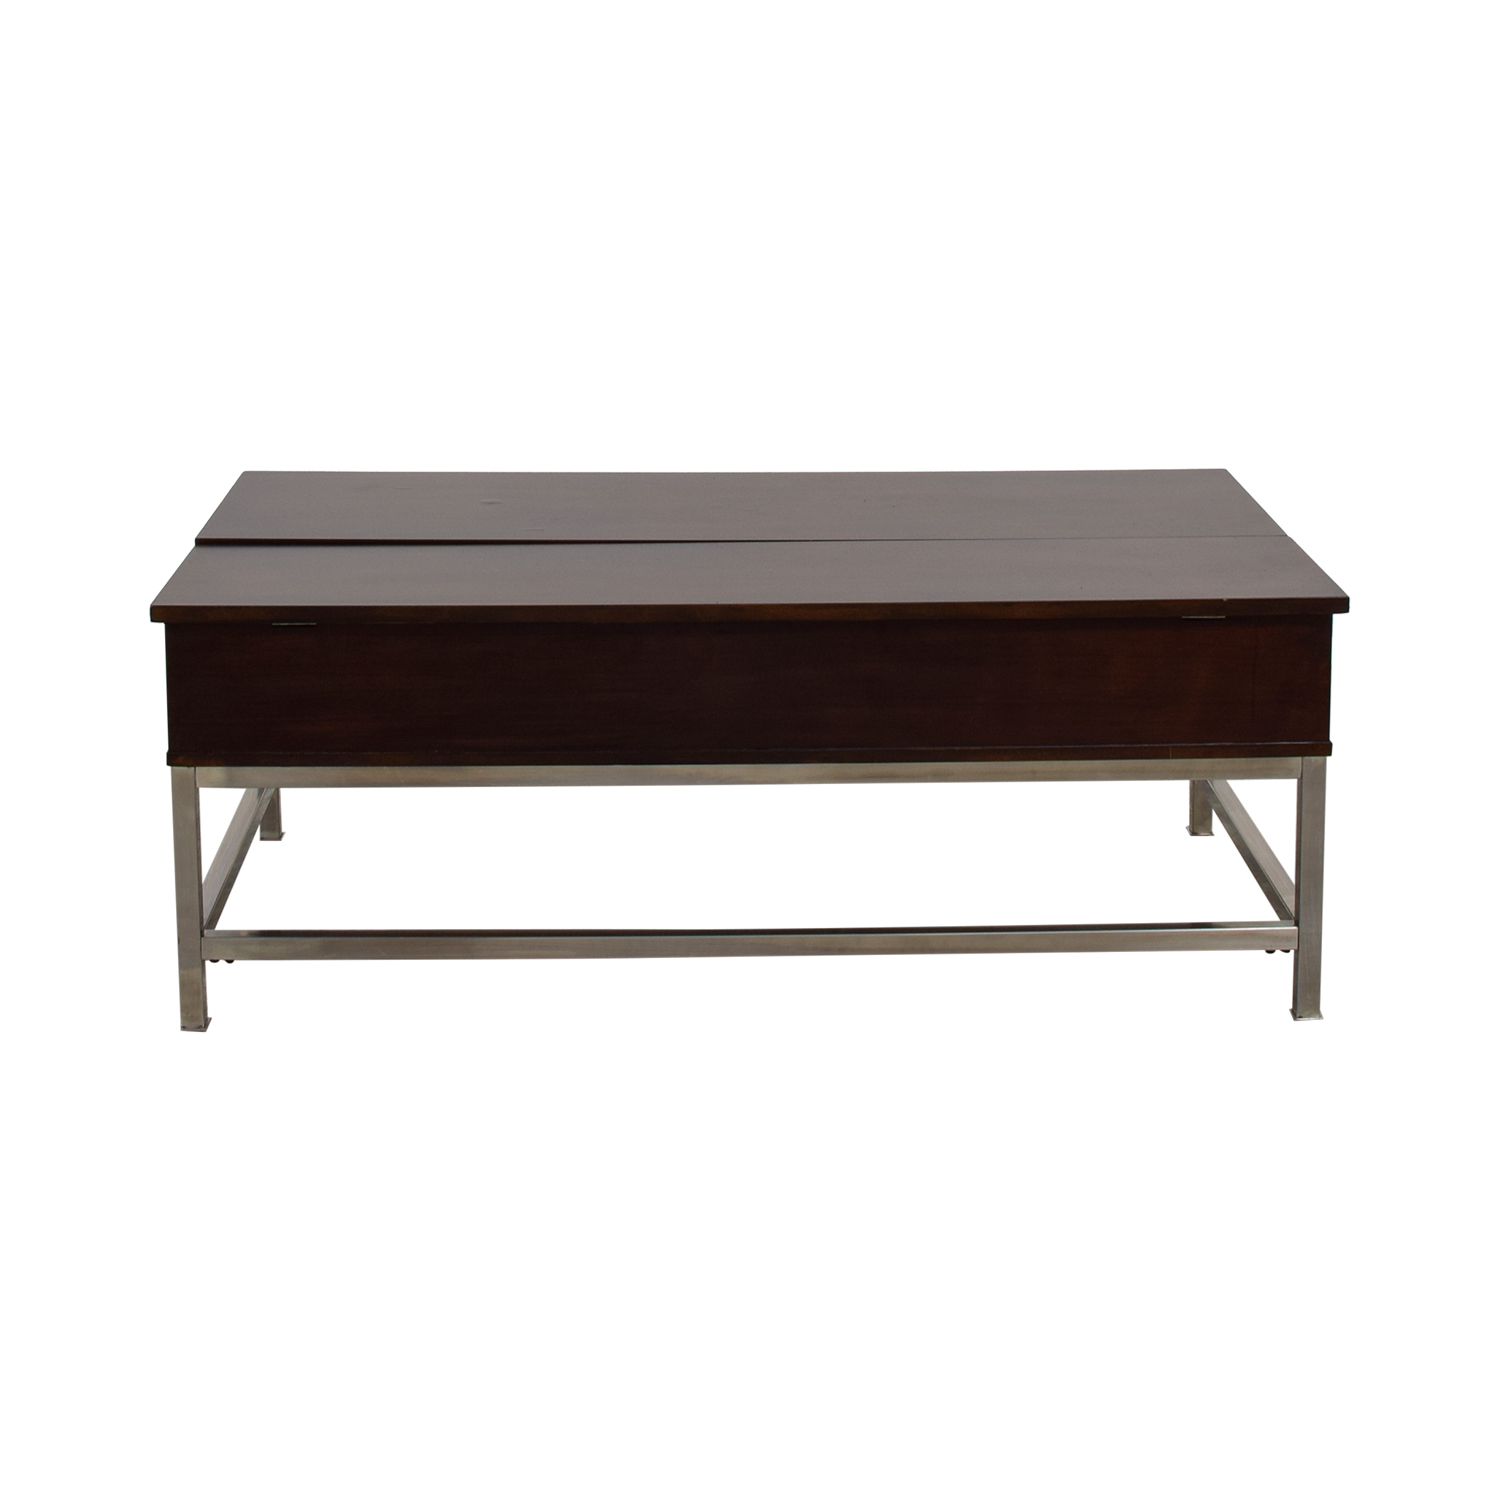 shop Raymour & Flanigan Lift Top Coffee Table Raymour & Flanigan